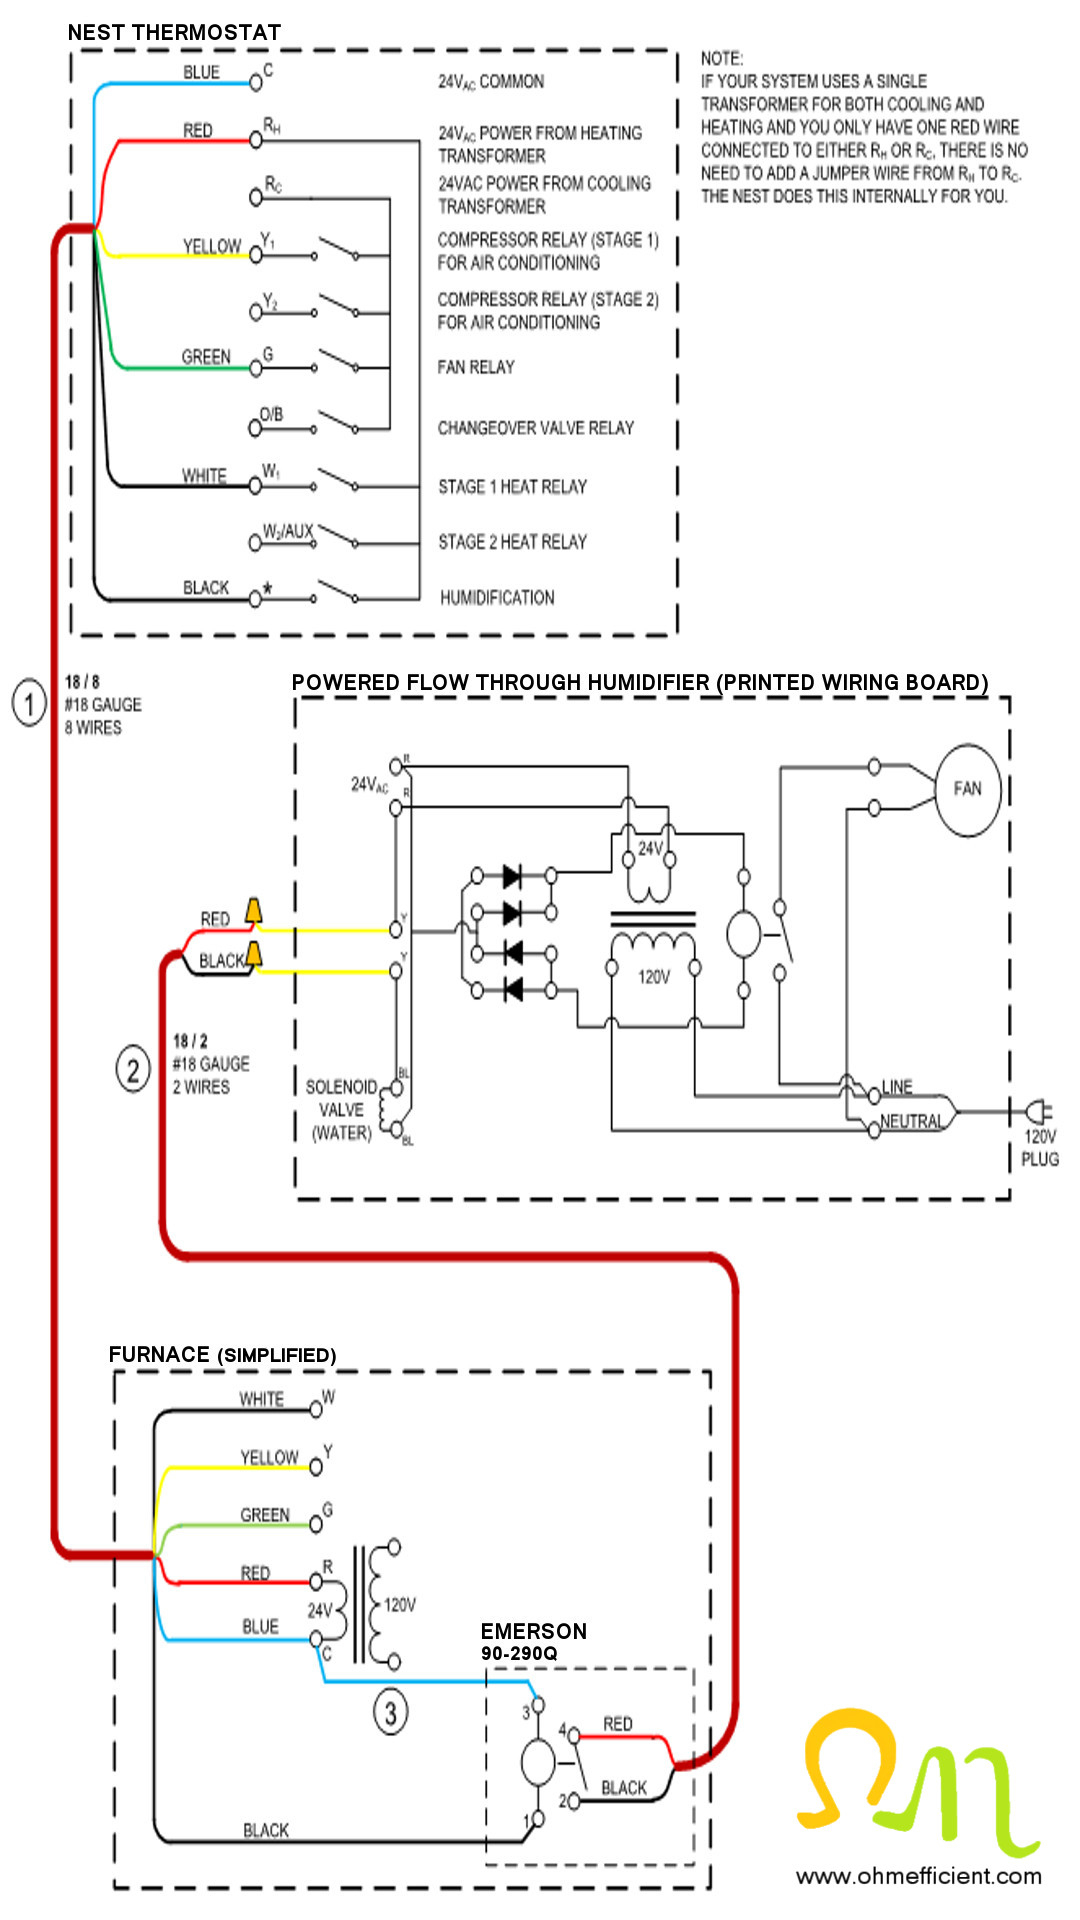 How To Connect & Setup A Nest Thermostat To Function As A Humidistat - Nest Thermostat Wiring Diagram To Transformer